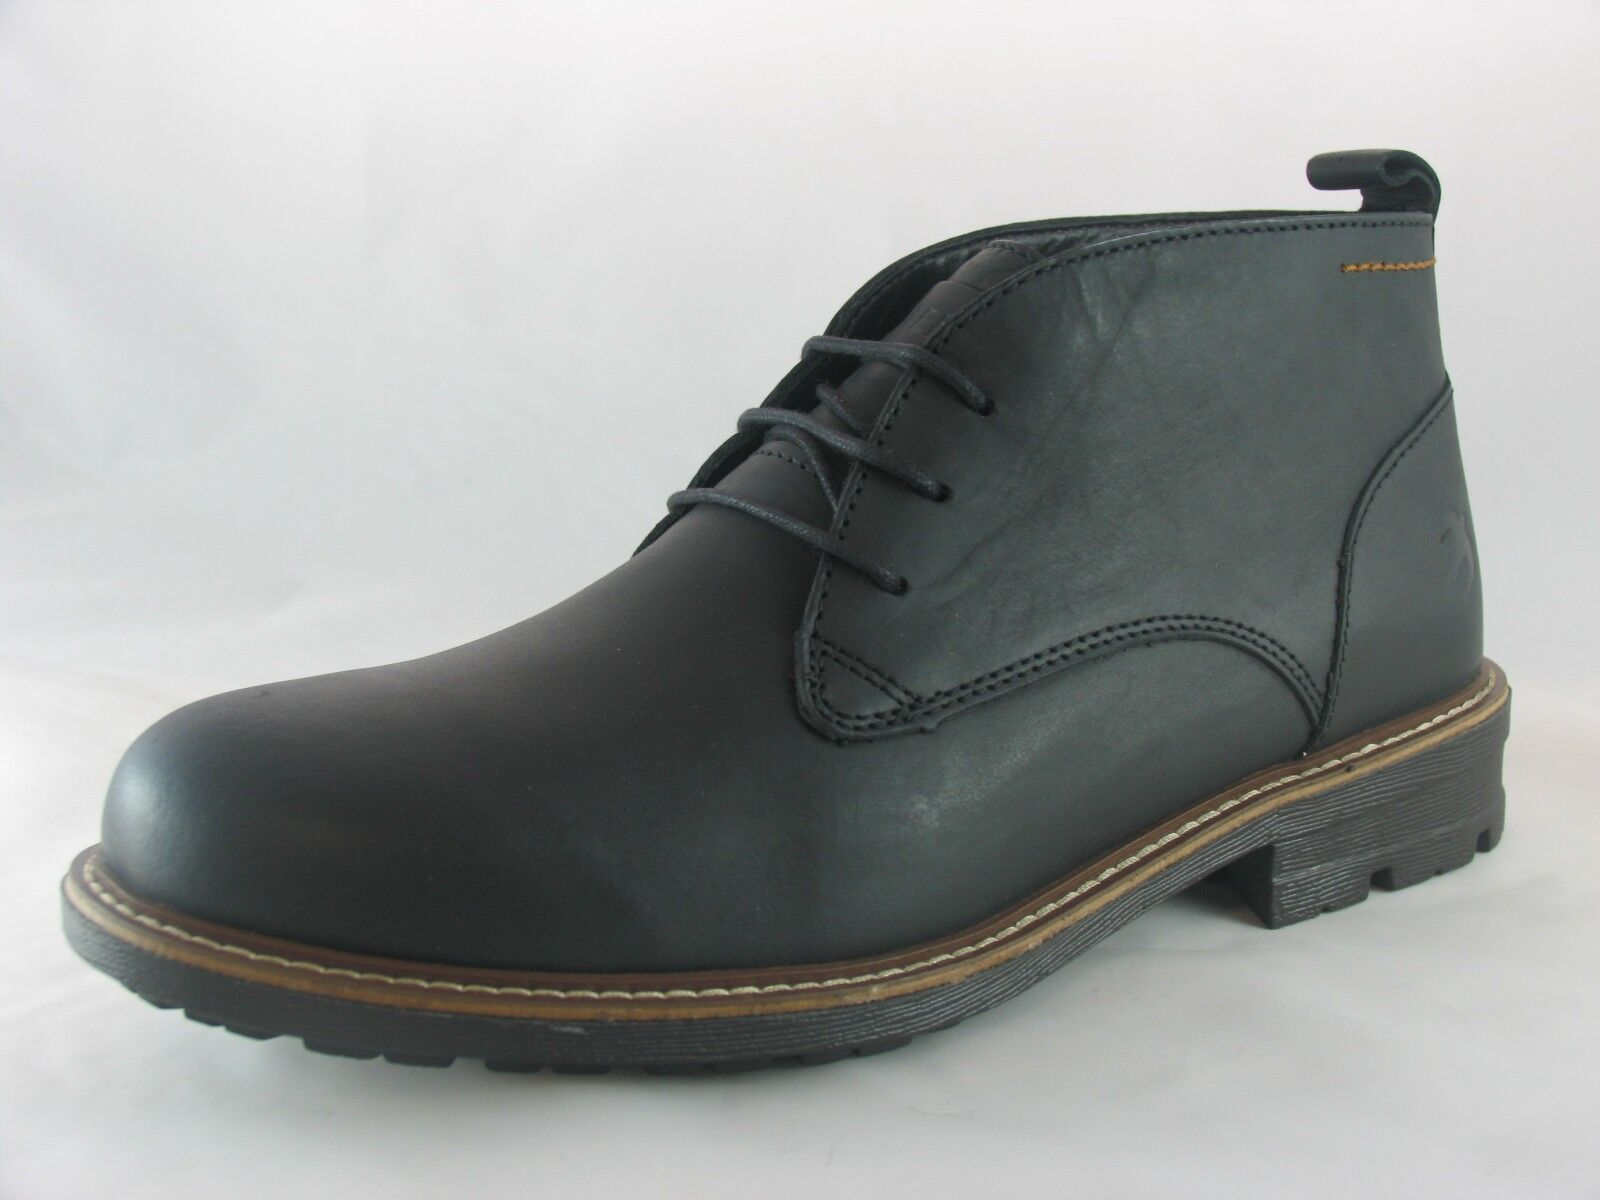 49ad52a82f672 Men's Brakeburn Chukka Boot Black/Brown Leather Ankle Boots UK 7-12 ...